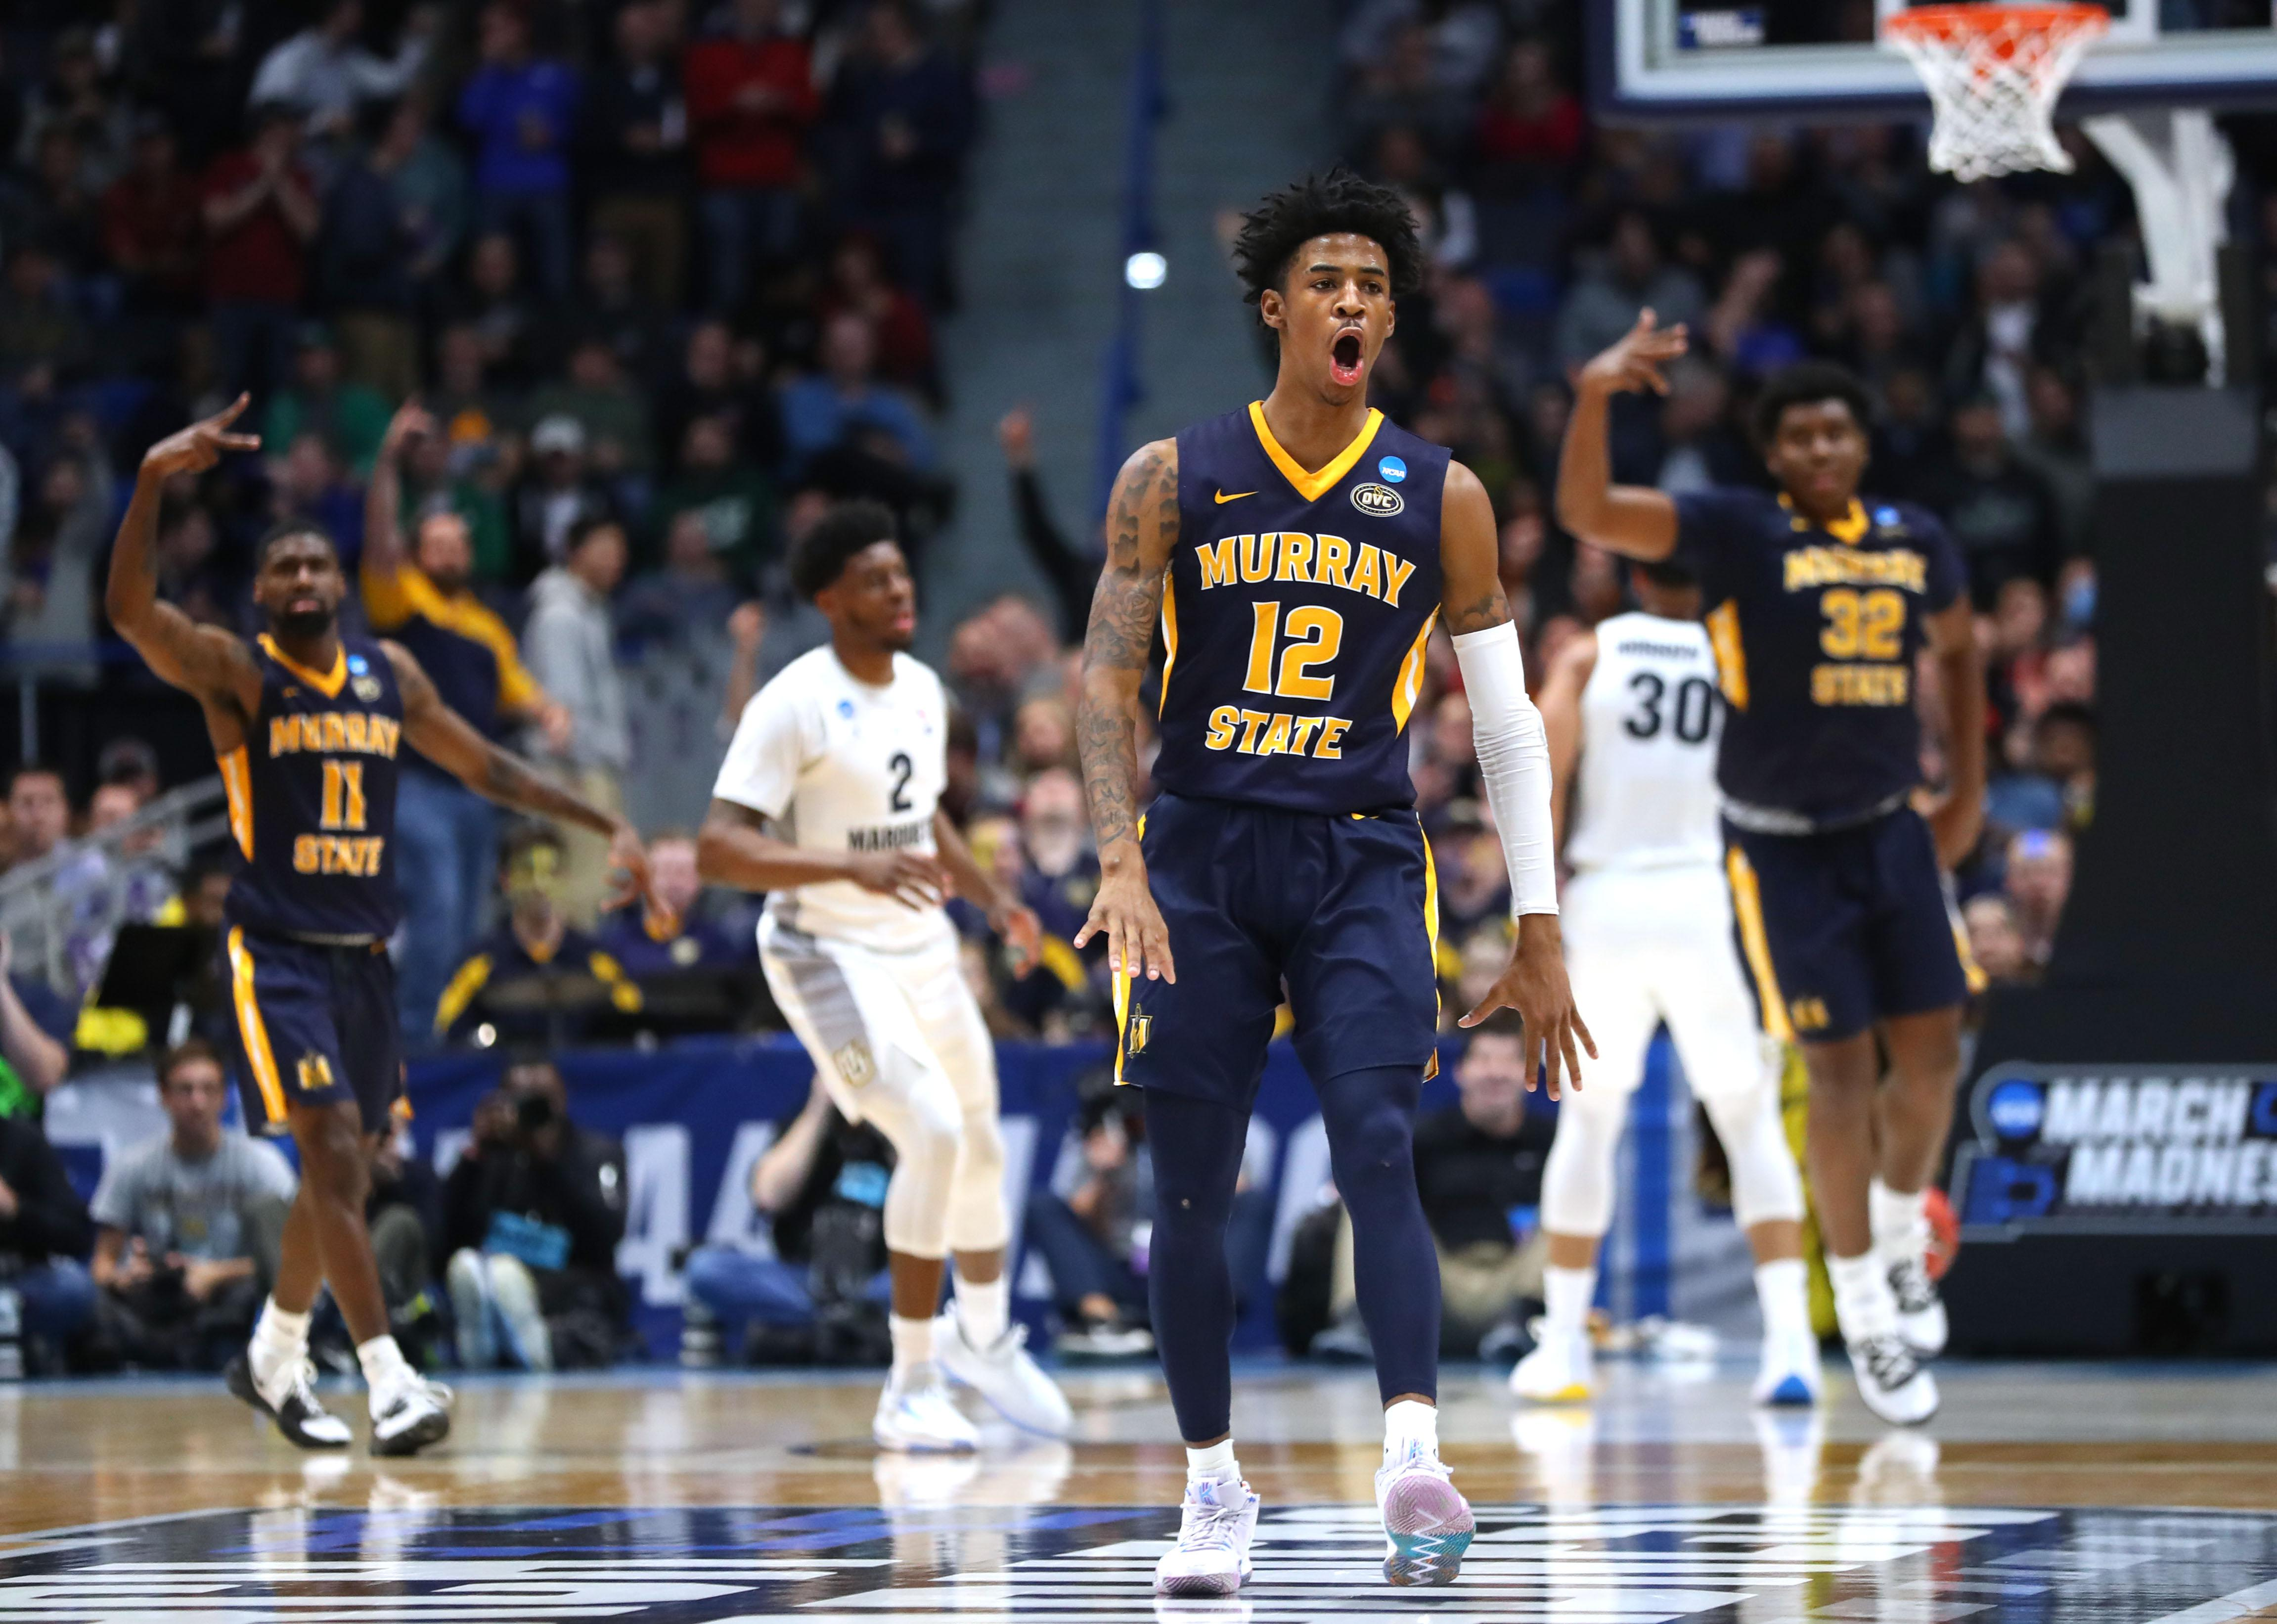 HARTFORD, CONNECTICUT - MARCH 21:  Ja Morant #12 of the Murray State Racers celebrates scoring at the end of the first half during the first round game of the 2019 NCAA Men's Basketball Tournament against the Marquette Golden Eagles at XL Center on March 21, 2019 in Hartford, Connecticut. (Photo by Maddie Meyer/Getty Images)